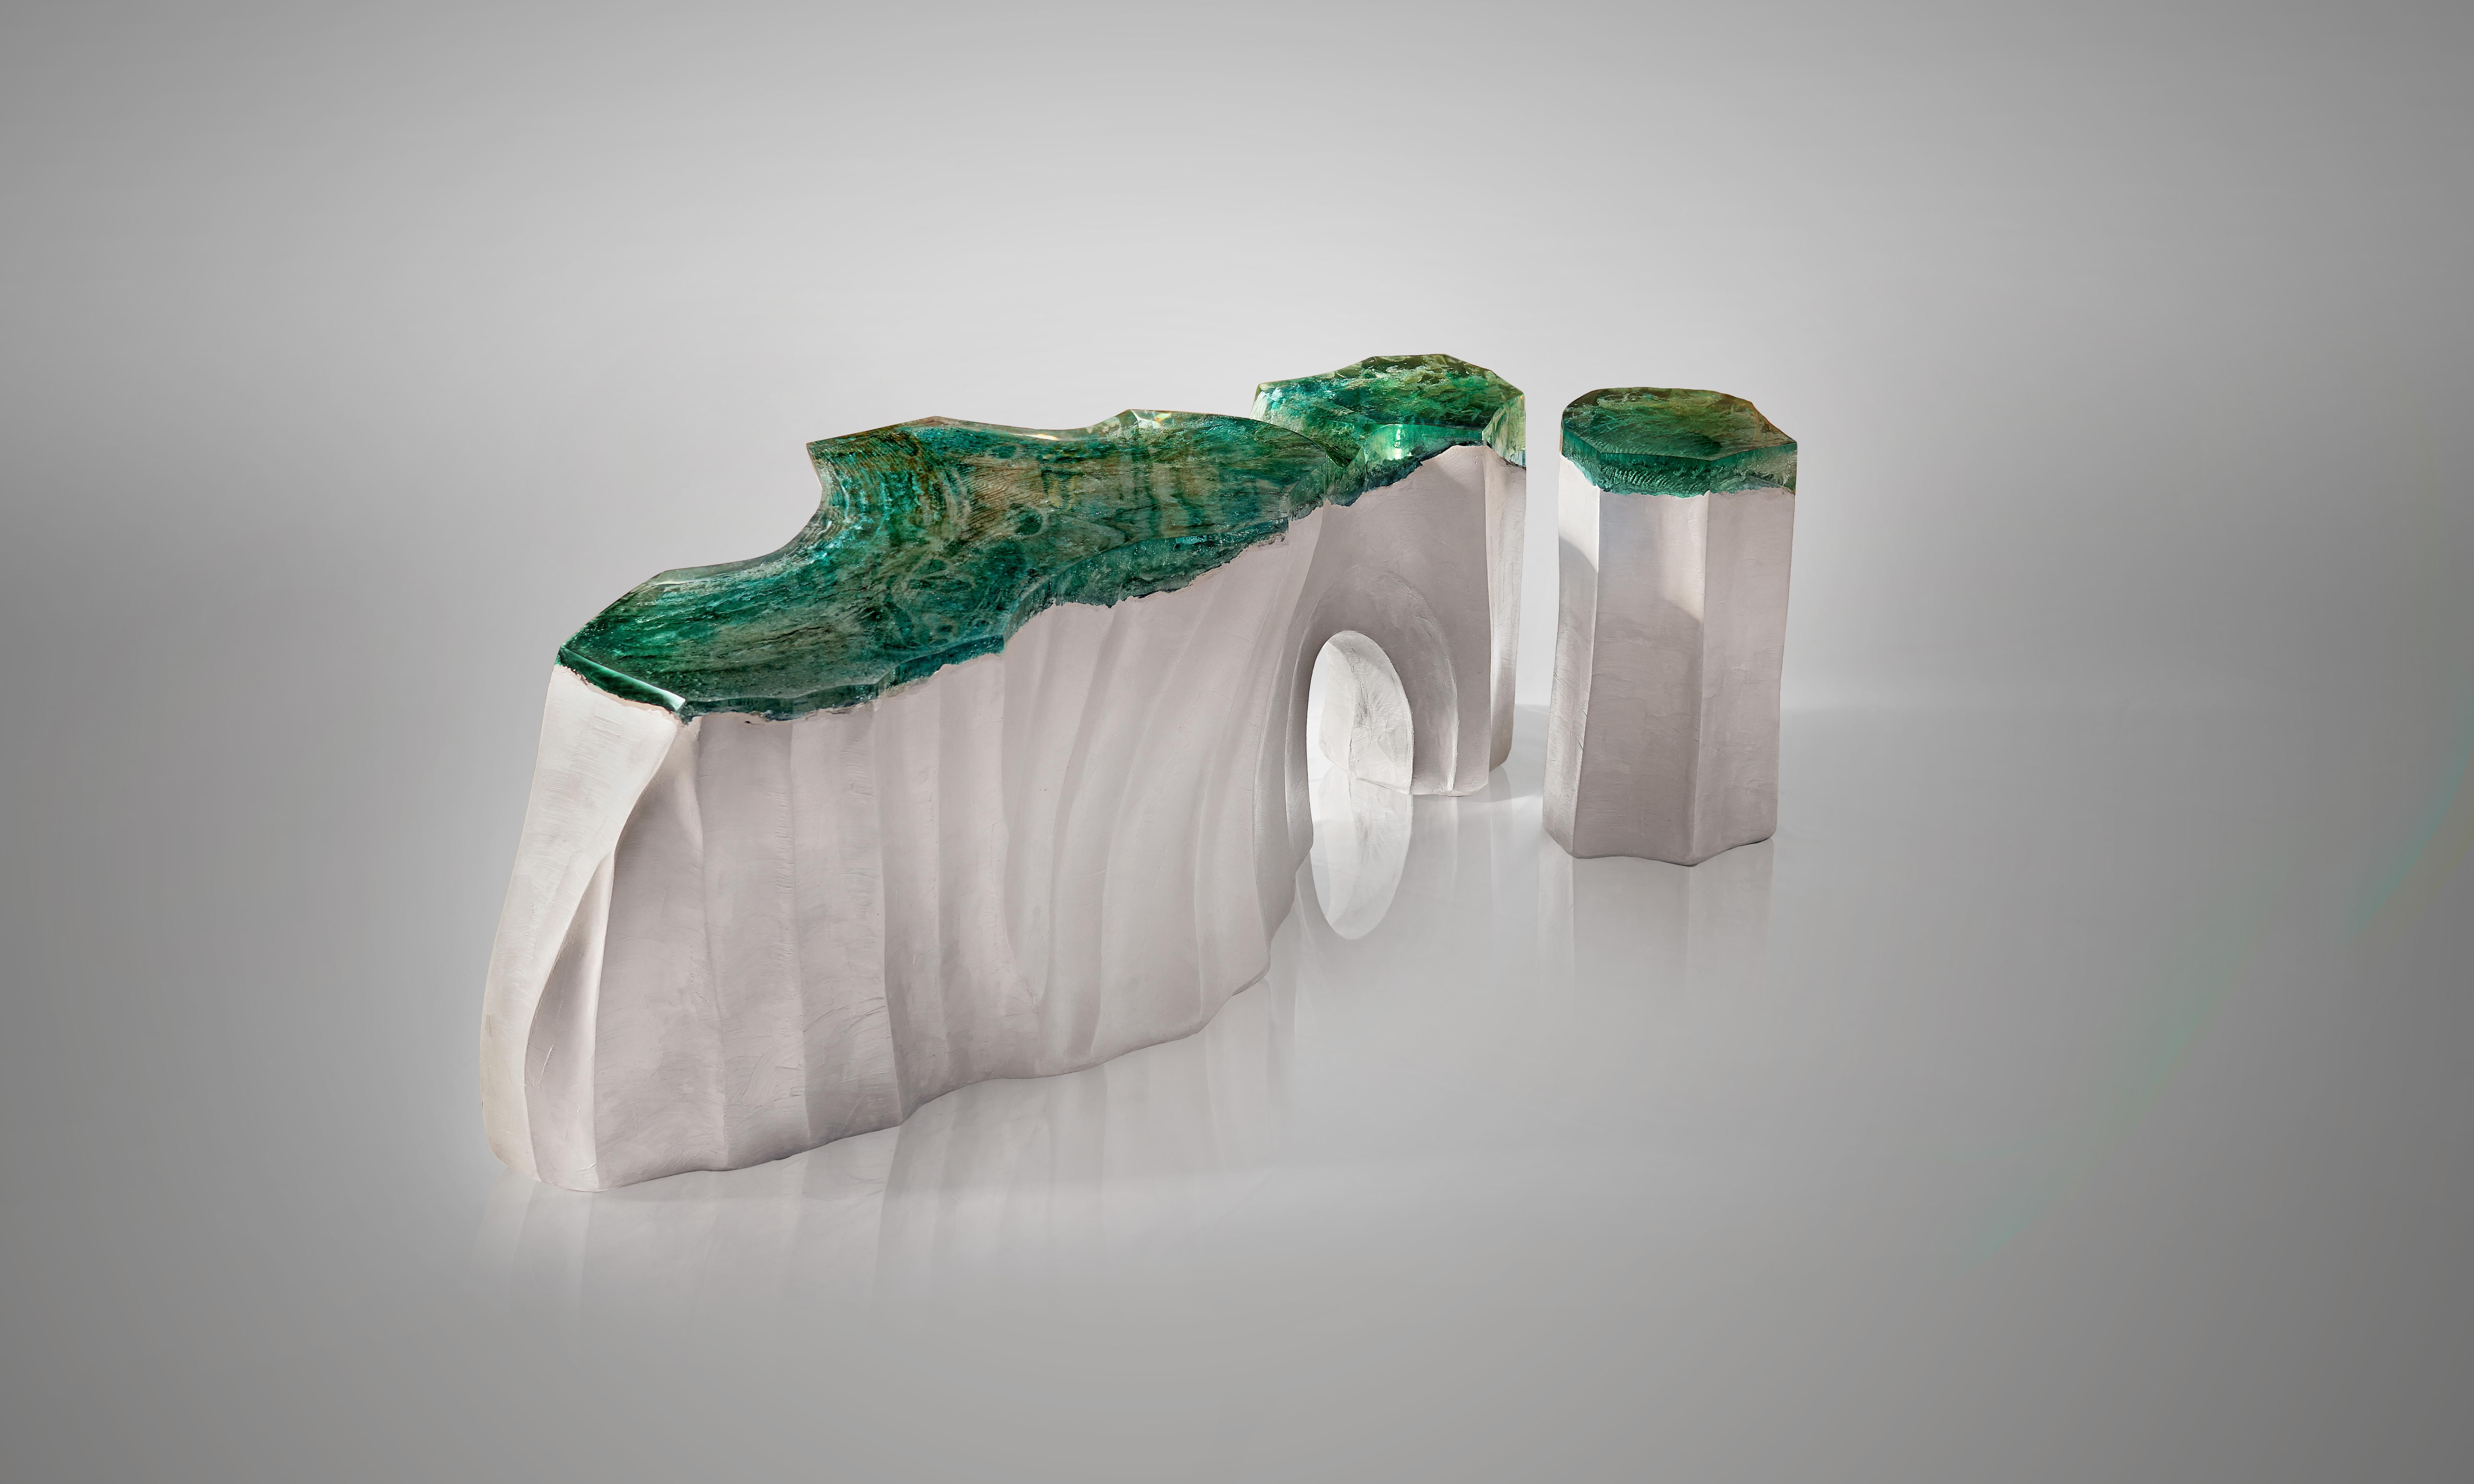 La Falaise Bench Side Table By Eduard Locota 2 Pieces In 2021 Sculpture Nature Inspiration Side Table